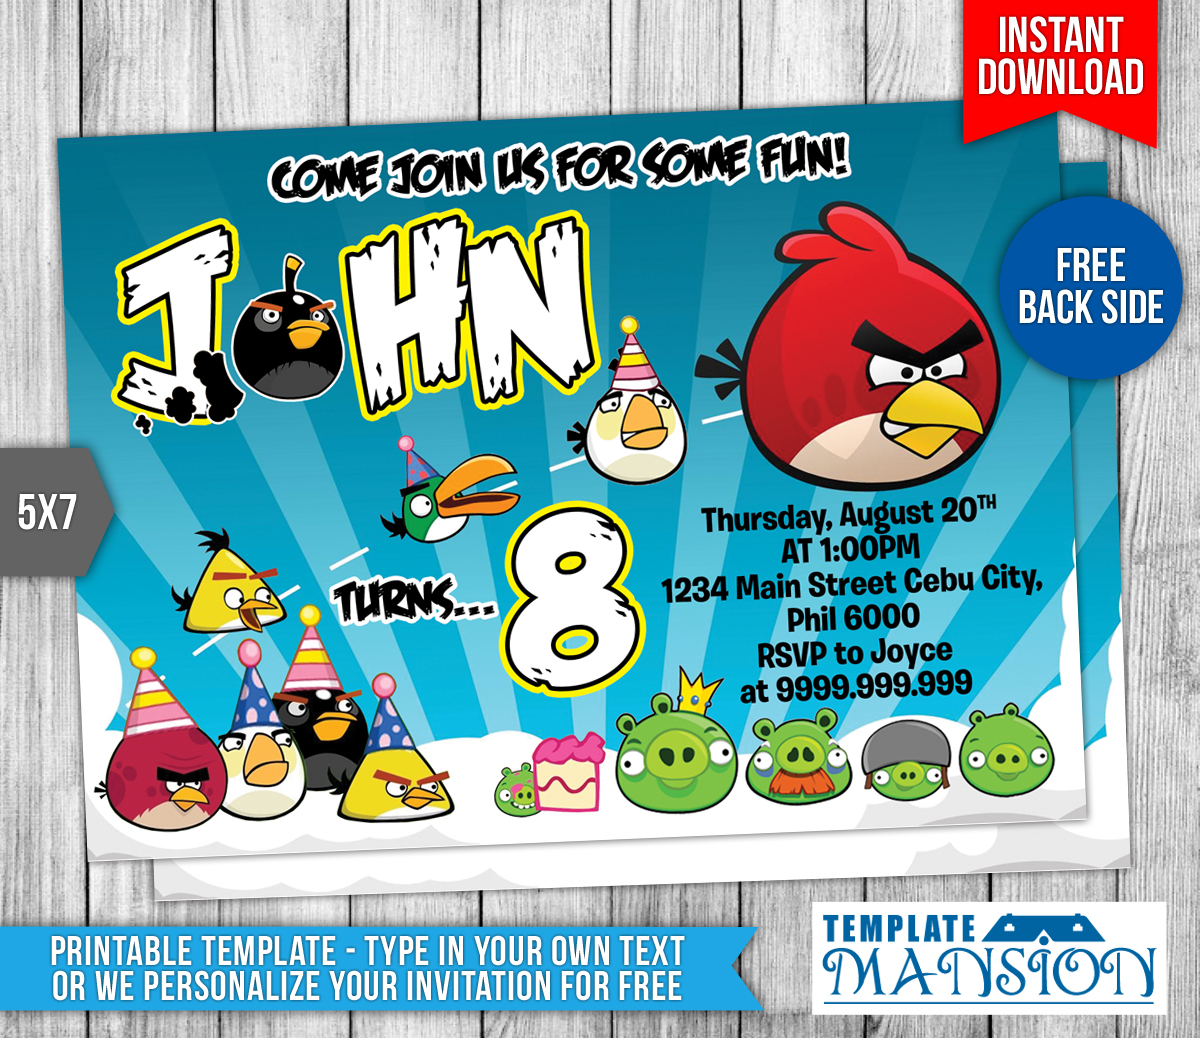 Angry Birds Birthday Invitation #2 By Templatemansion On